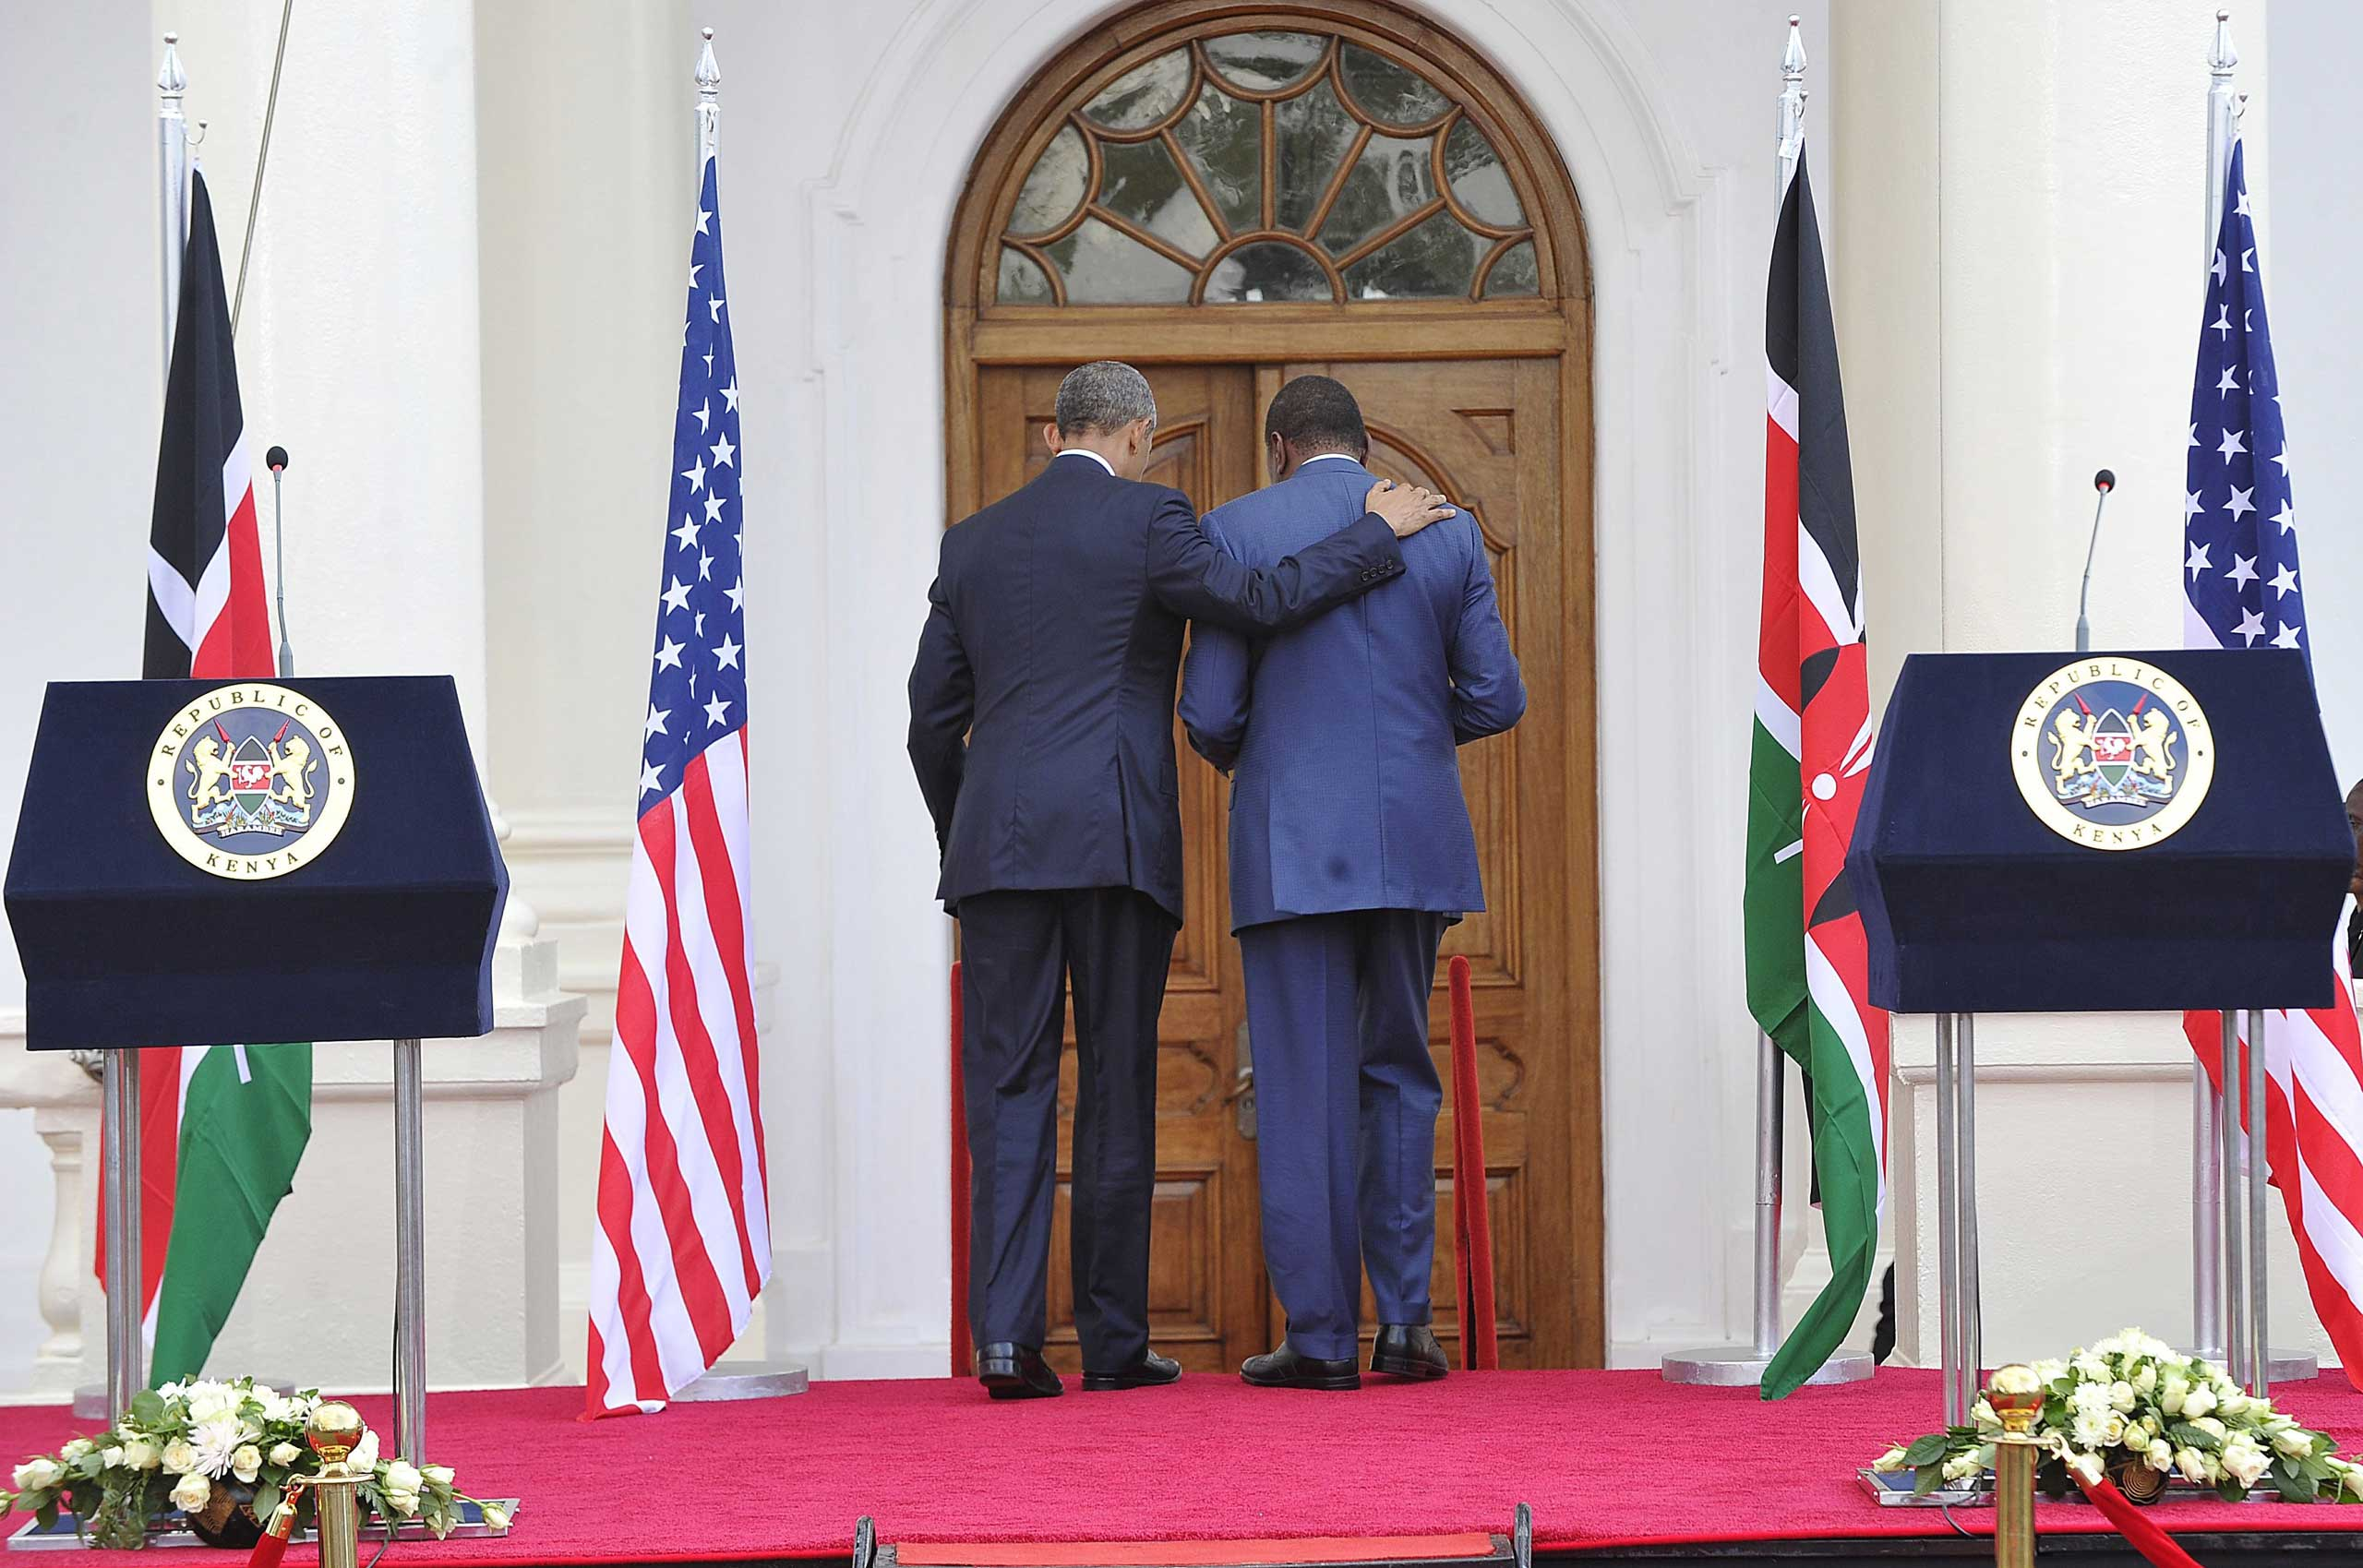 President Barack Obama and his Kenyan counterpart Uhuru Kenyatta leave after a joint press conference, discussing corruption, terrorism, and gay rights,  at the State House in Nairobi on July 25, 2015.